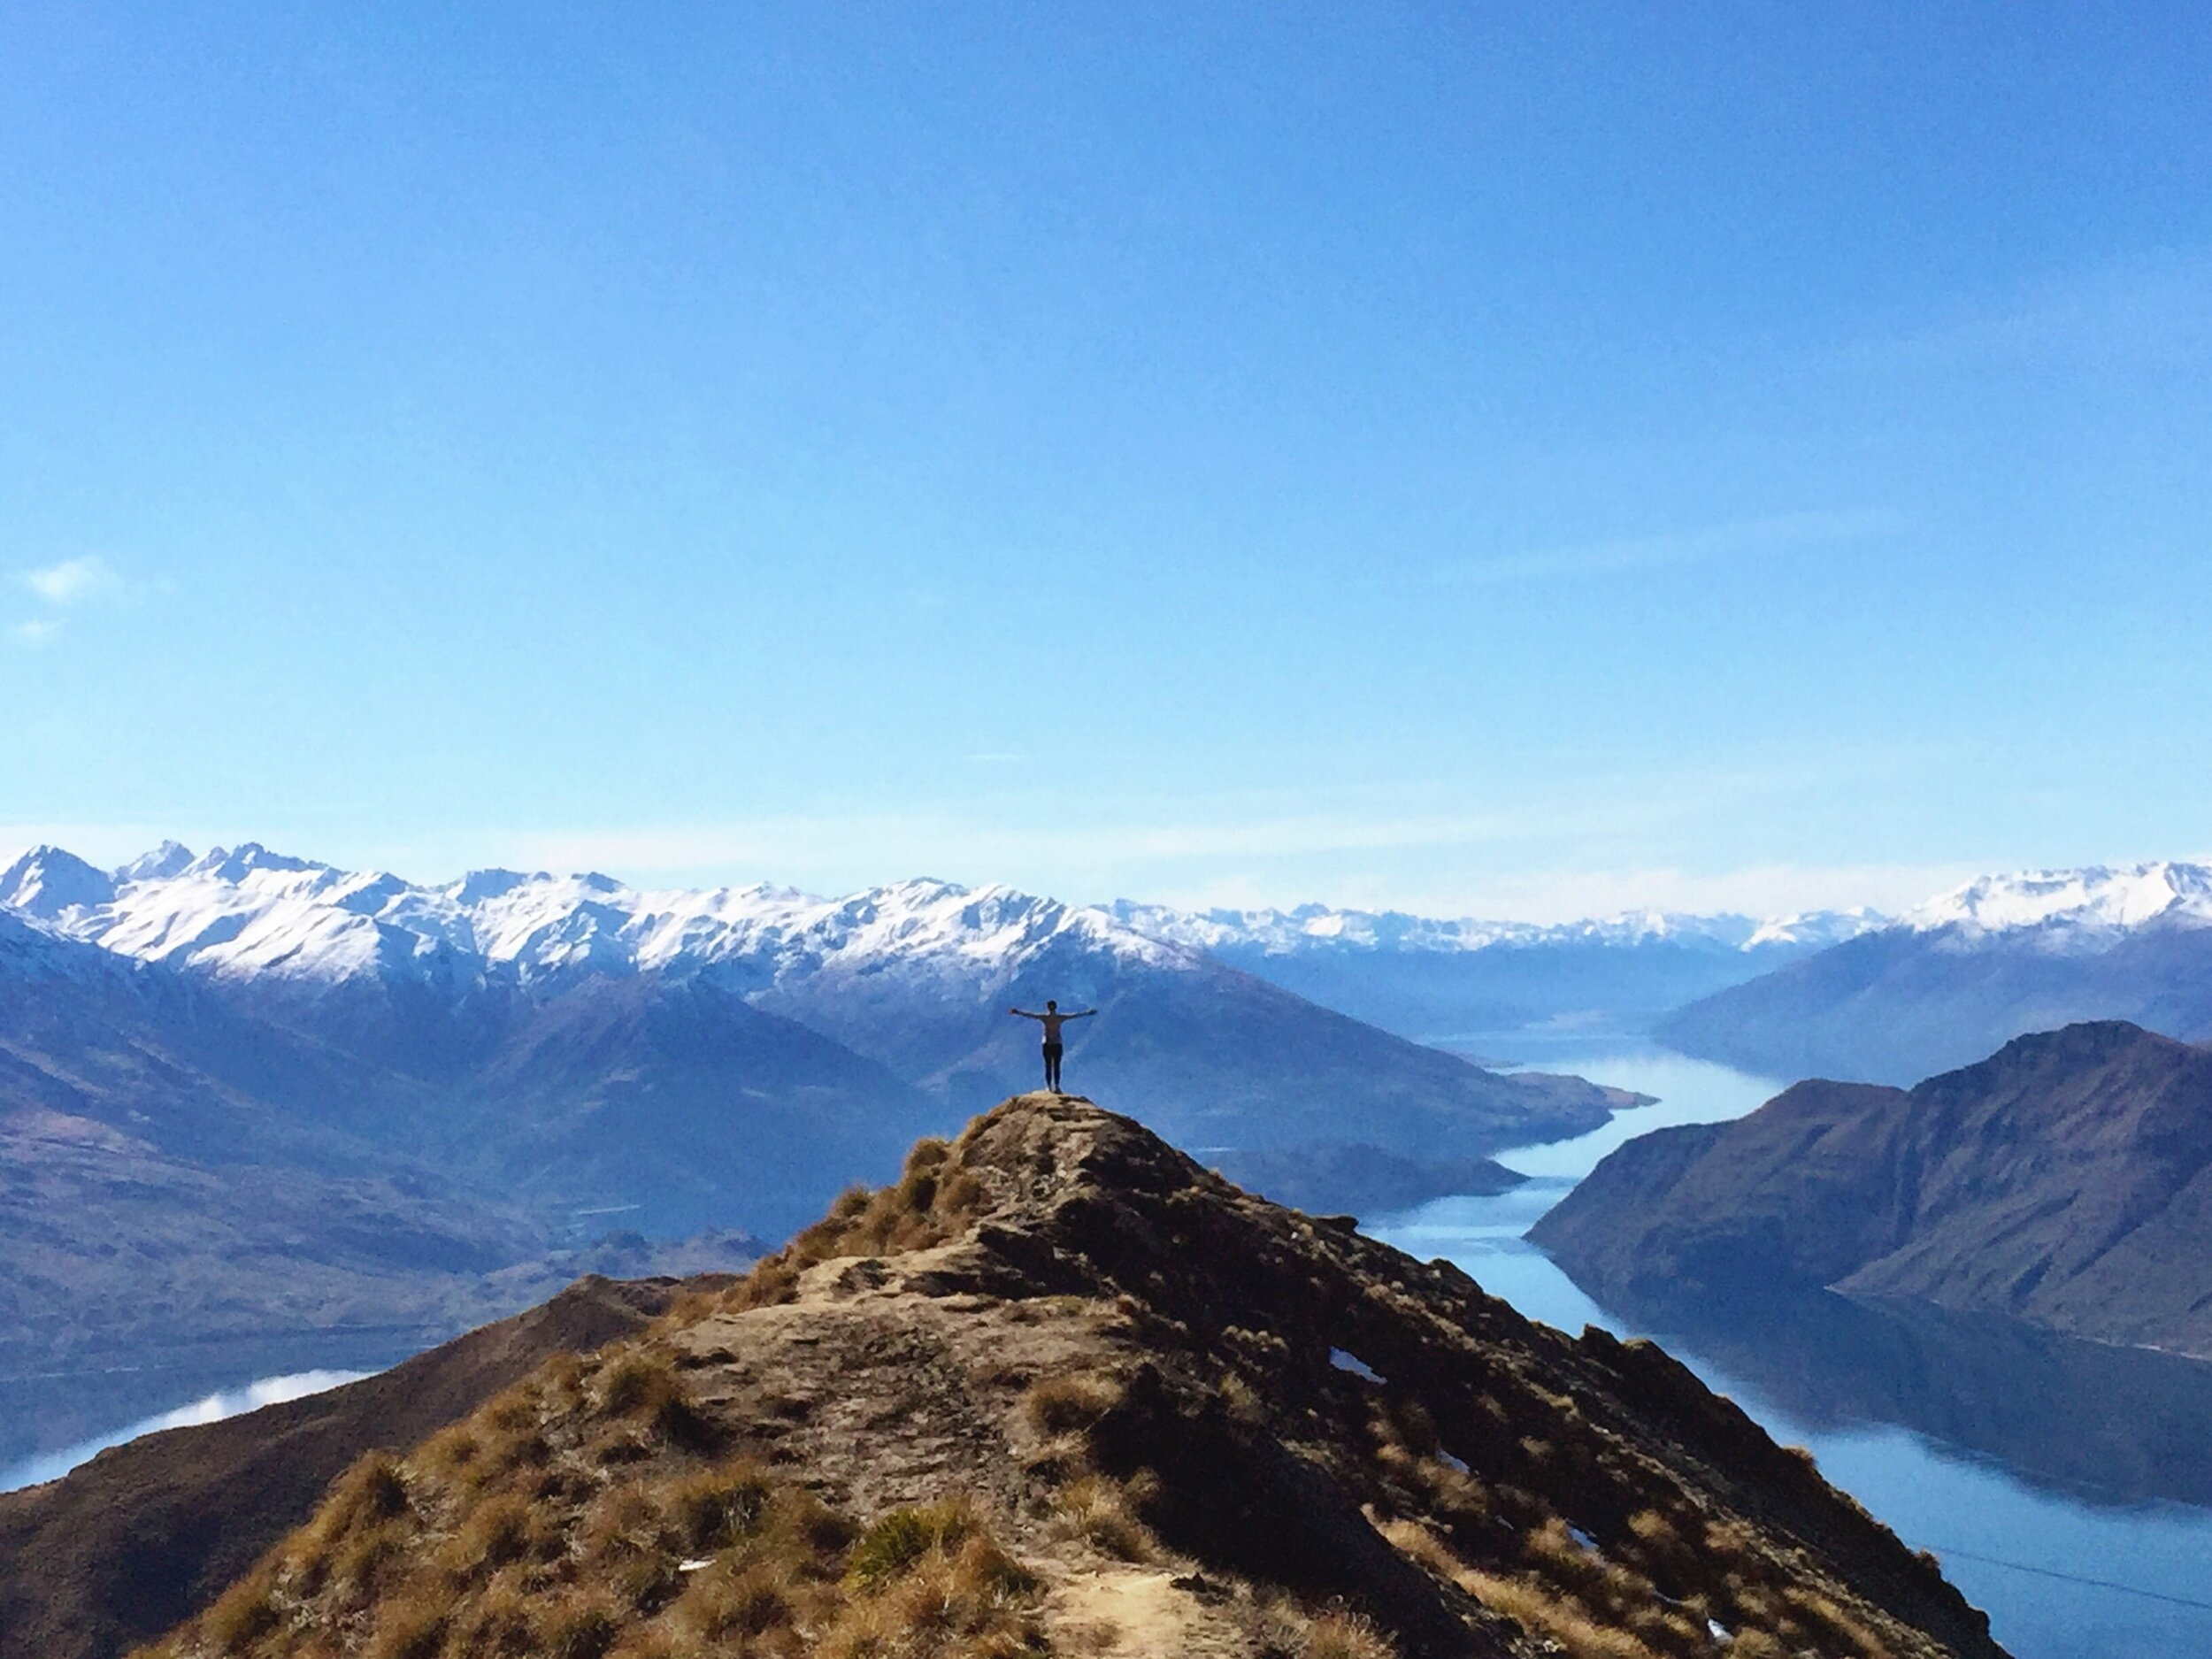 Grabbing yourself a pair of hiking and camping boots will help take you to views like this over Lake Wanaka, New Zealand! Let's start by going through the best cheap hiking boots for men.